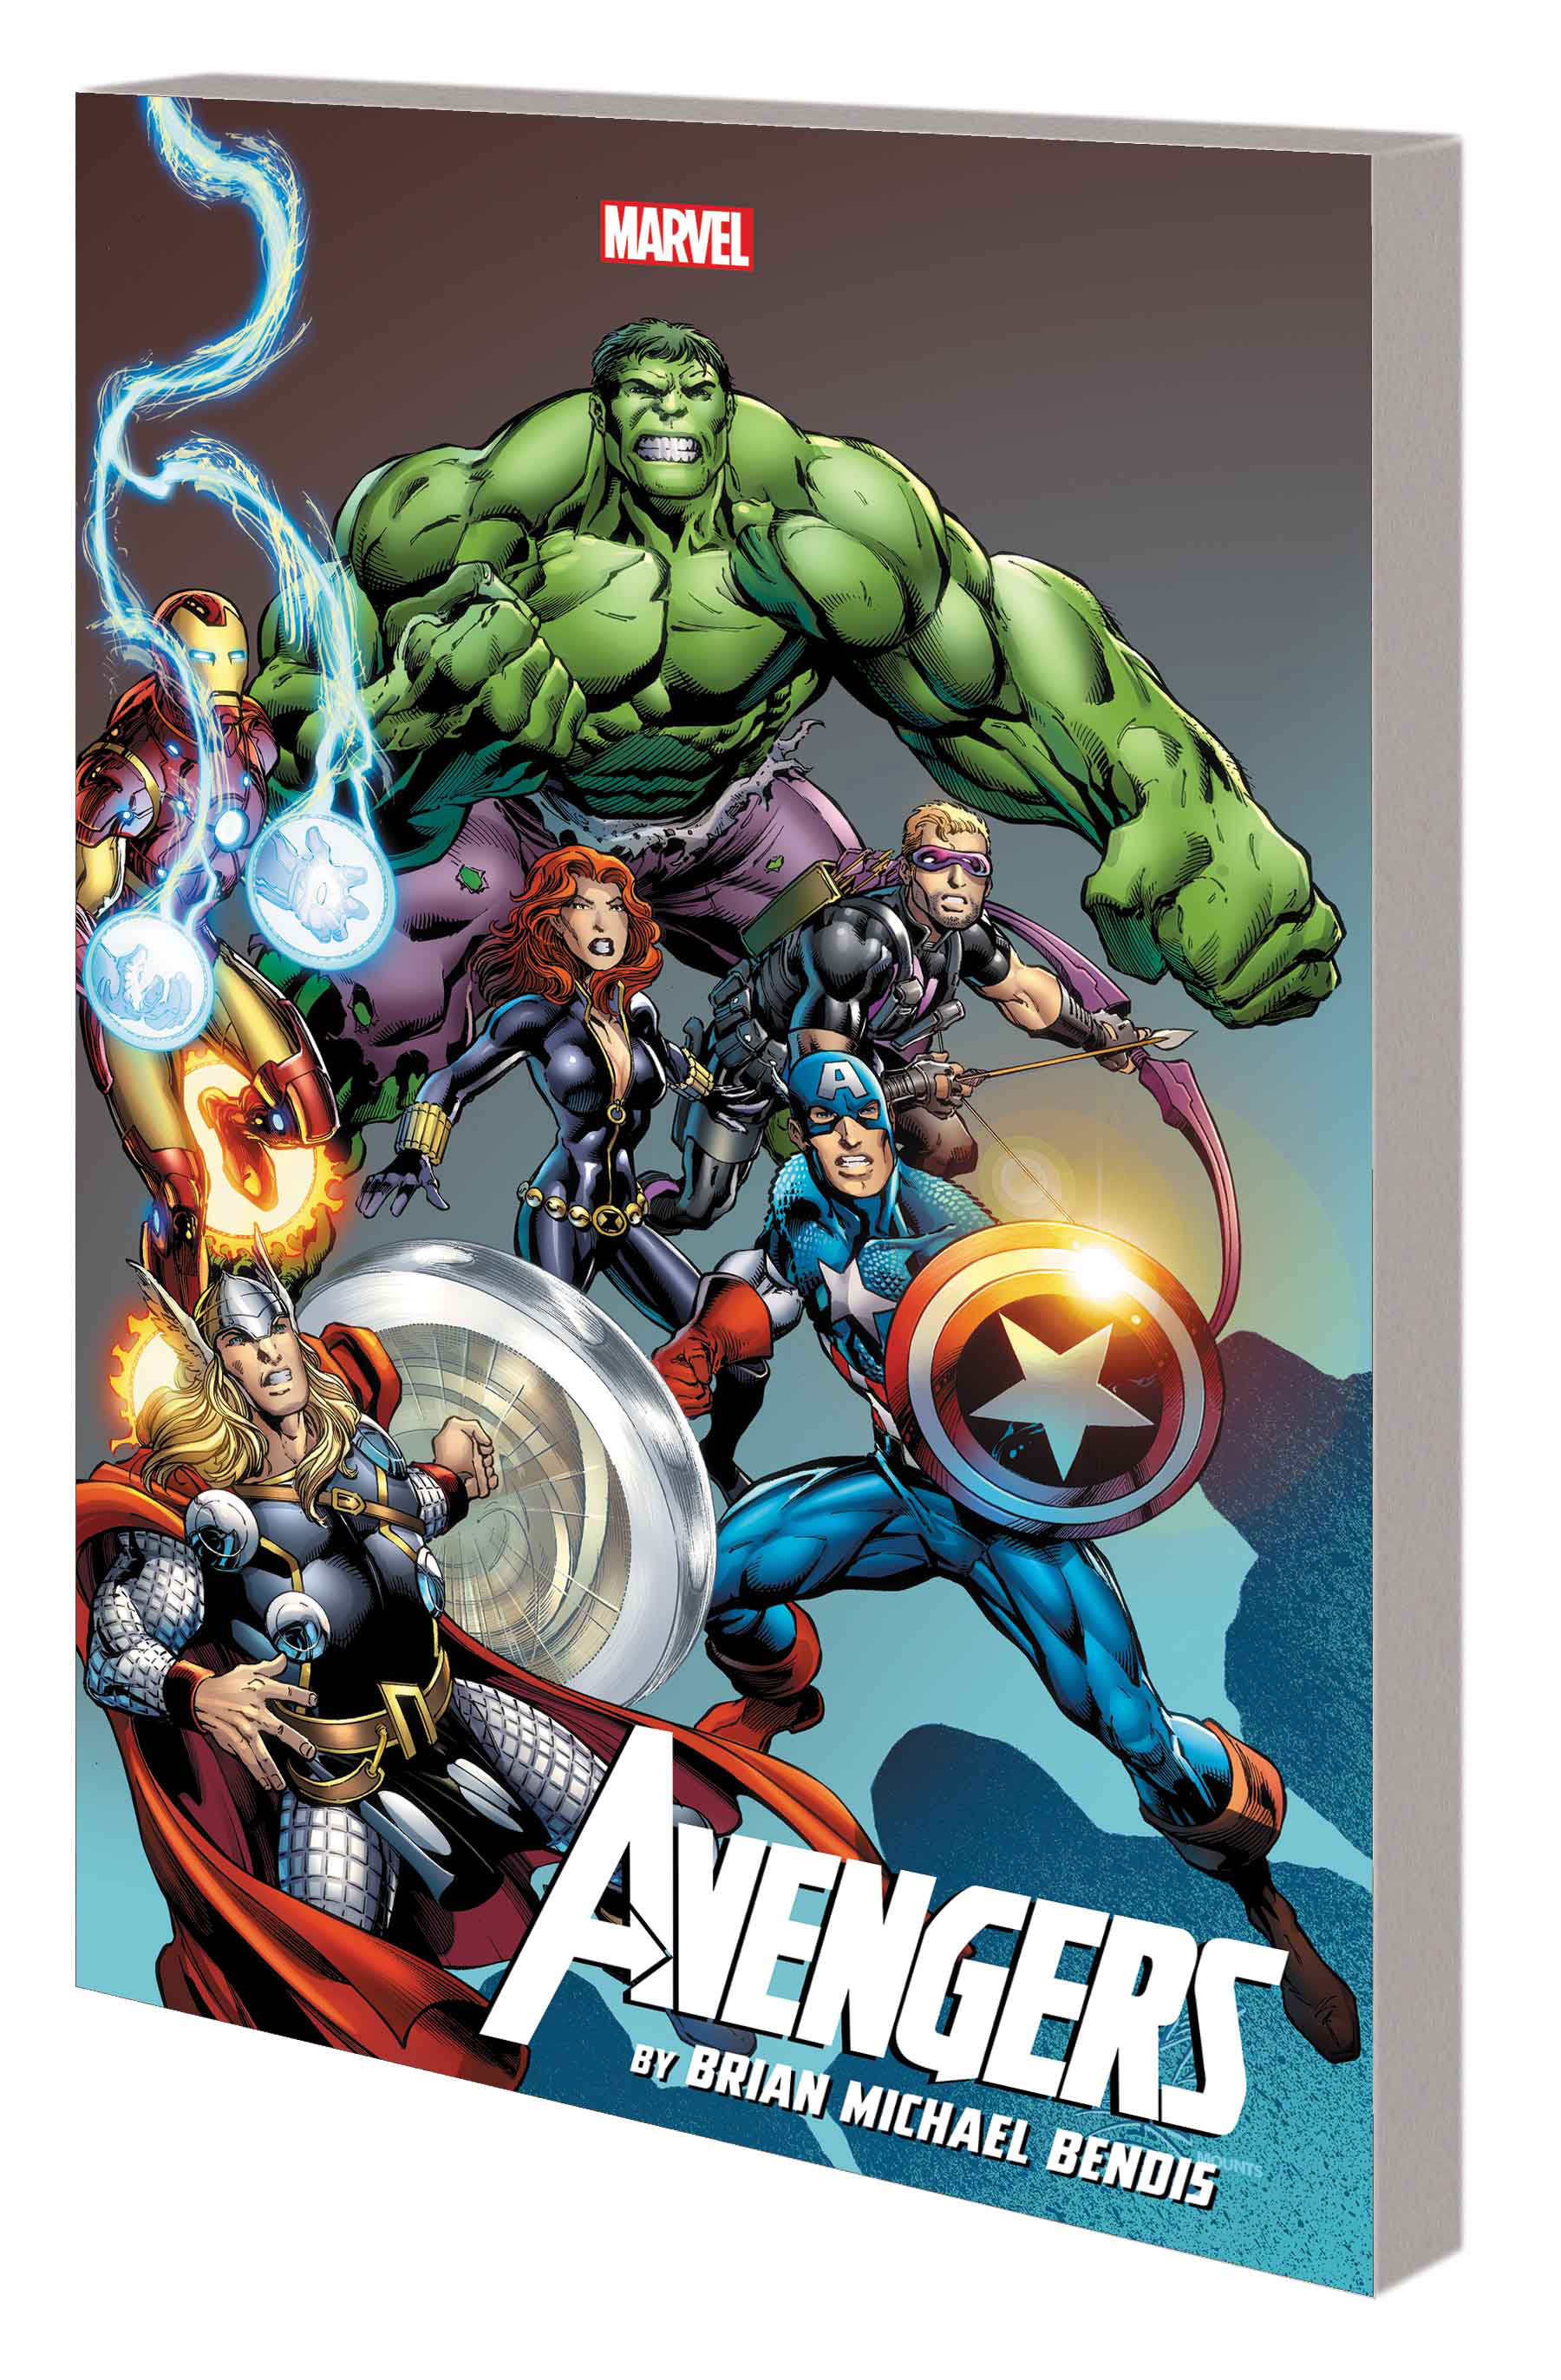 AVENGERS BY BRIAN MICHAEL BENDIS: THE COMPLETE COLLECTION VOL. 3 TPB